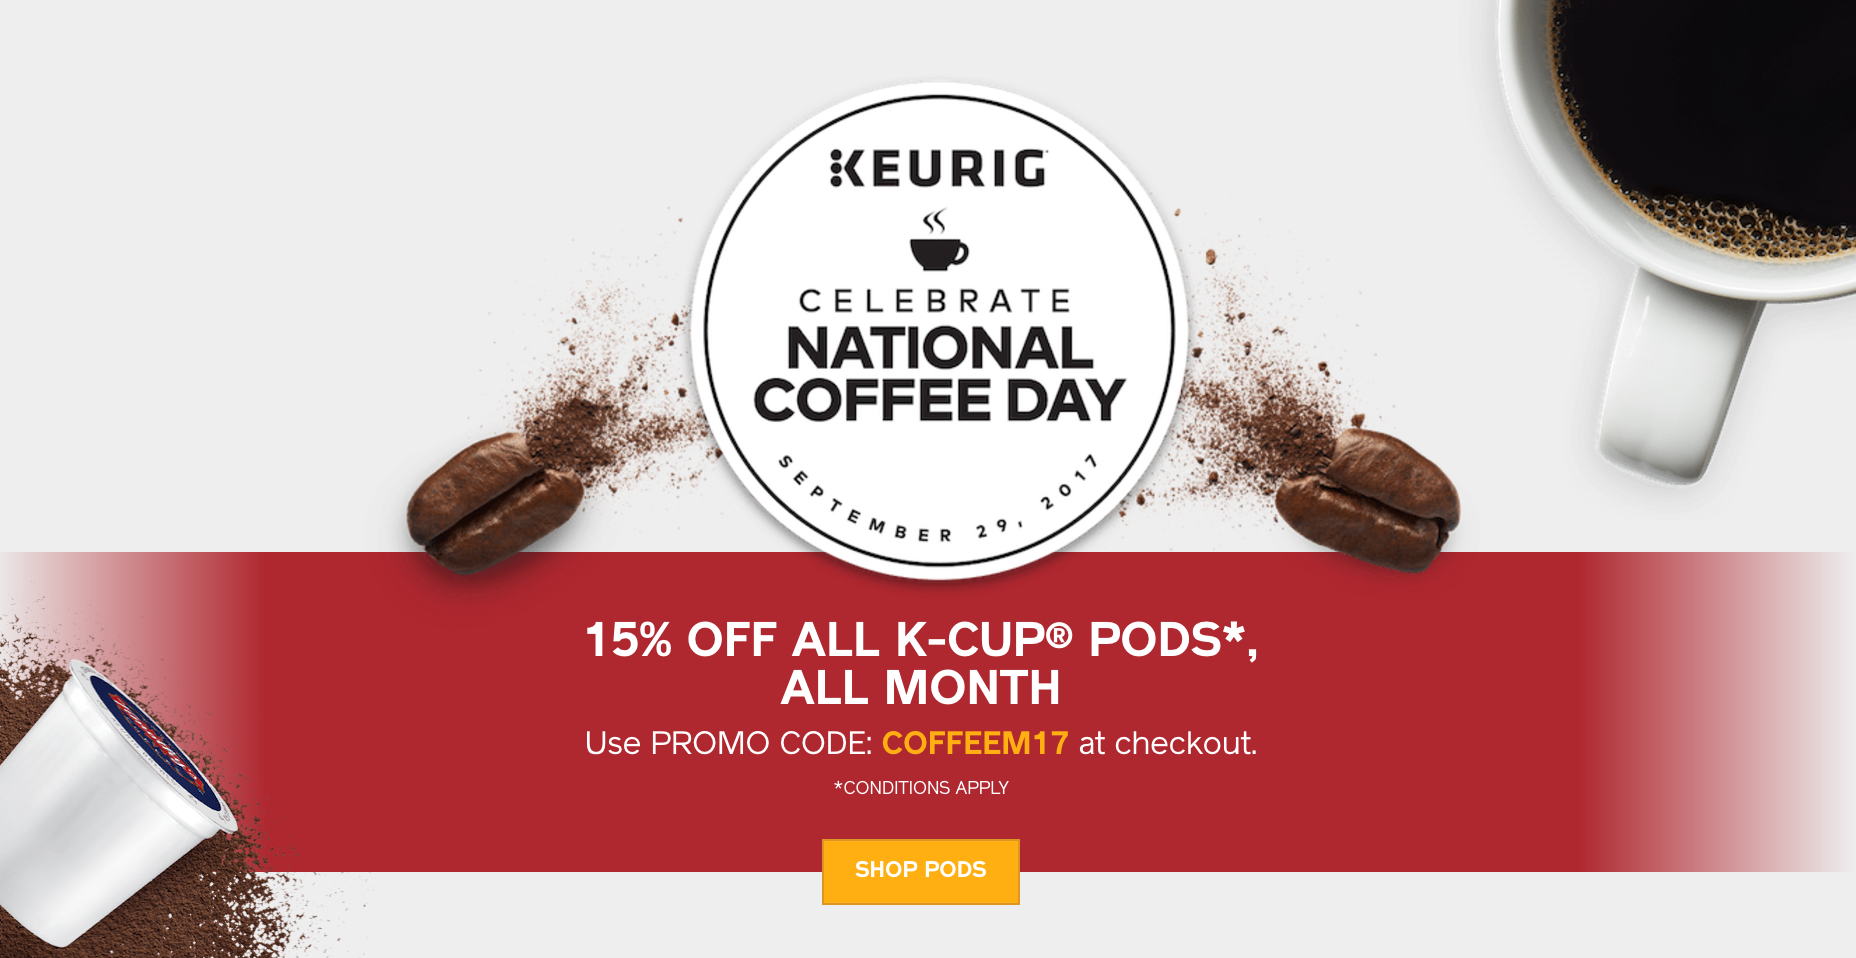 The Keurig K brews a rich, smooth, and delicious cup every time with the quality you expect from Keurig. With a strength control setting for a bolder brew, five temperature settings, and multiple K-Cup, K-Mug, and K-Carafe pod brew sizes, you can customize your settings to get your perfect cup.